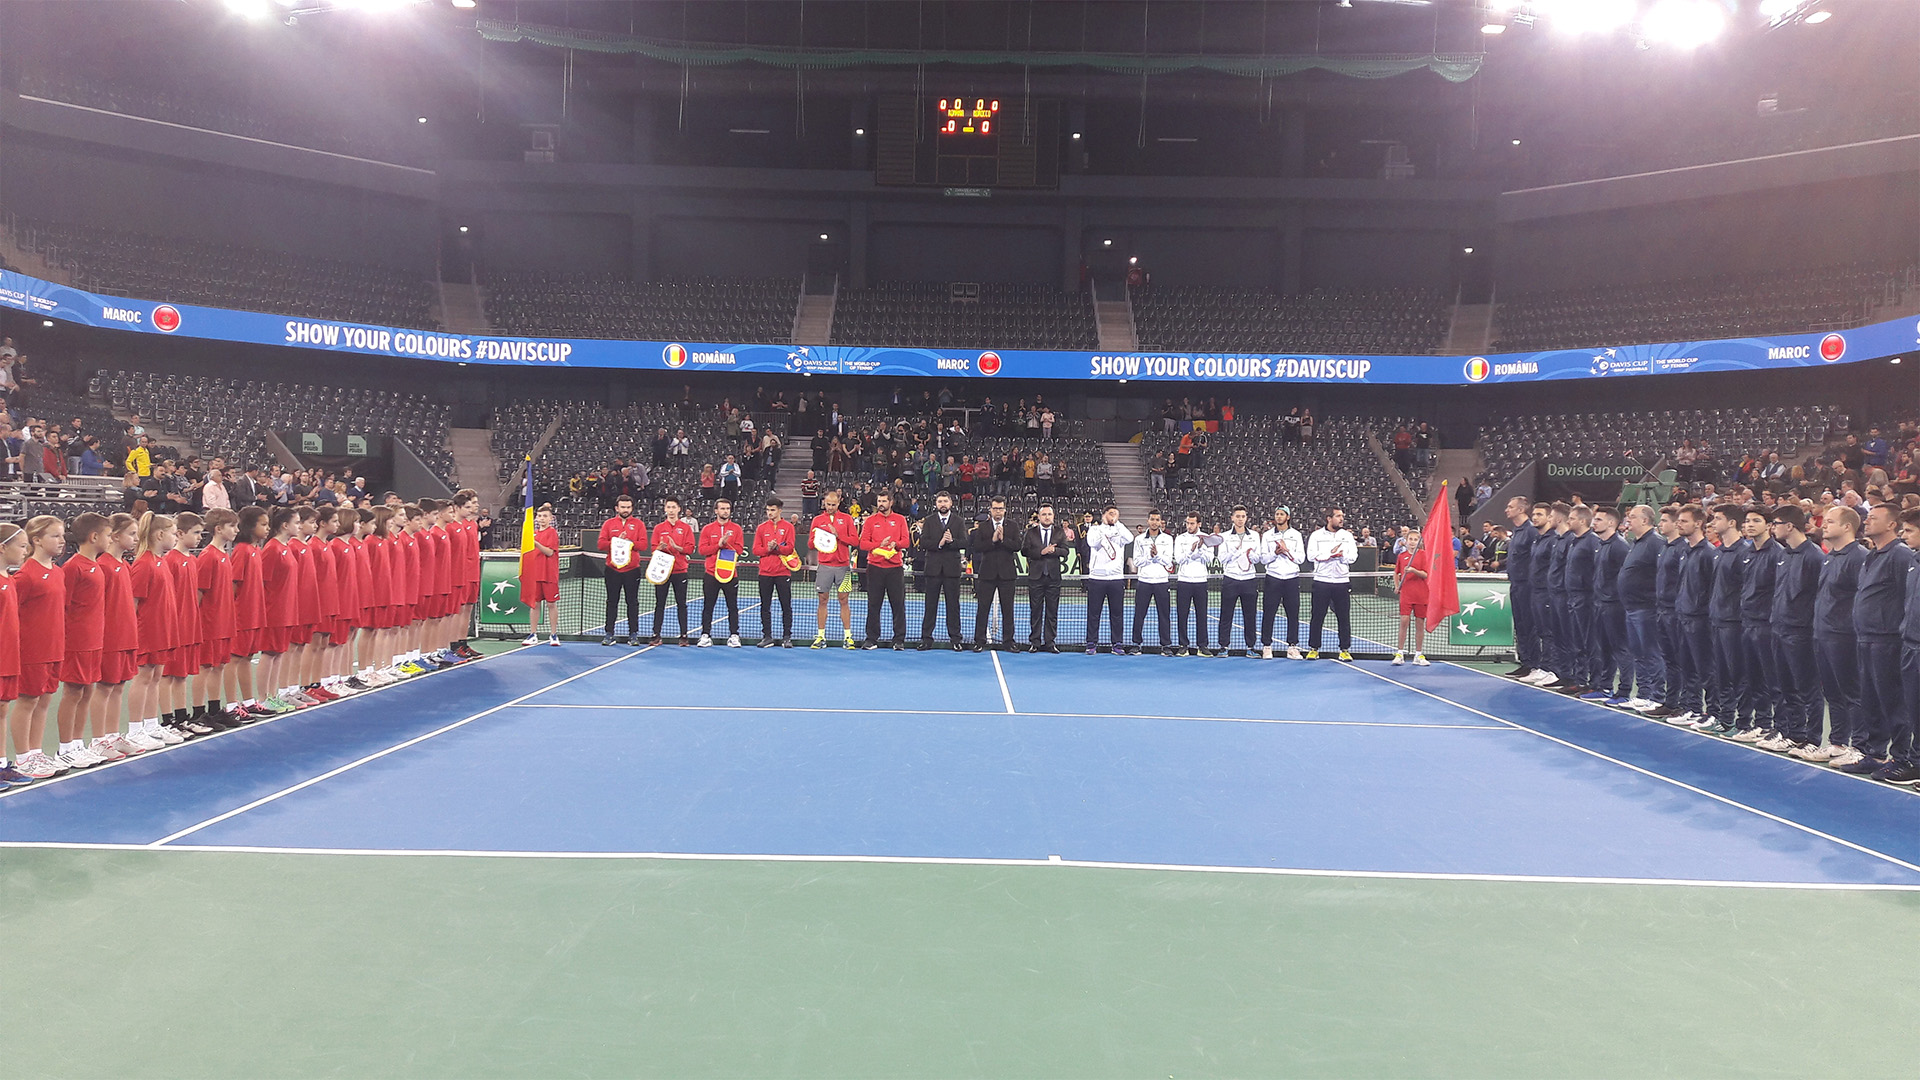 Davis Cup Romania - Maroc, April 2018